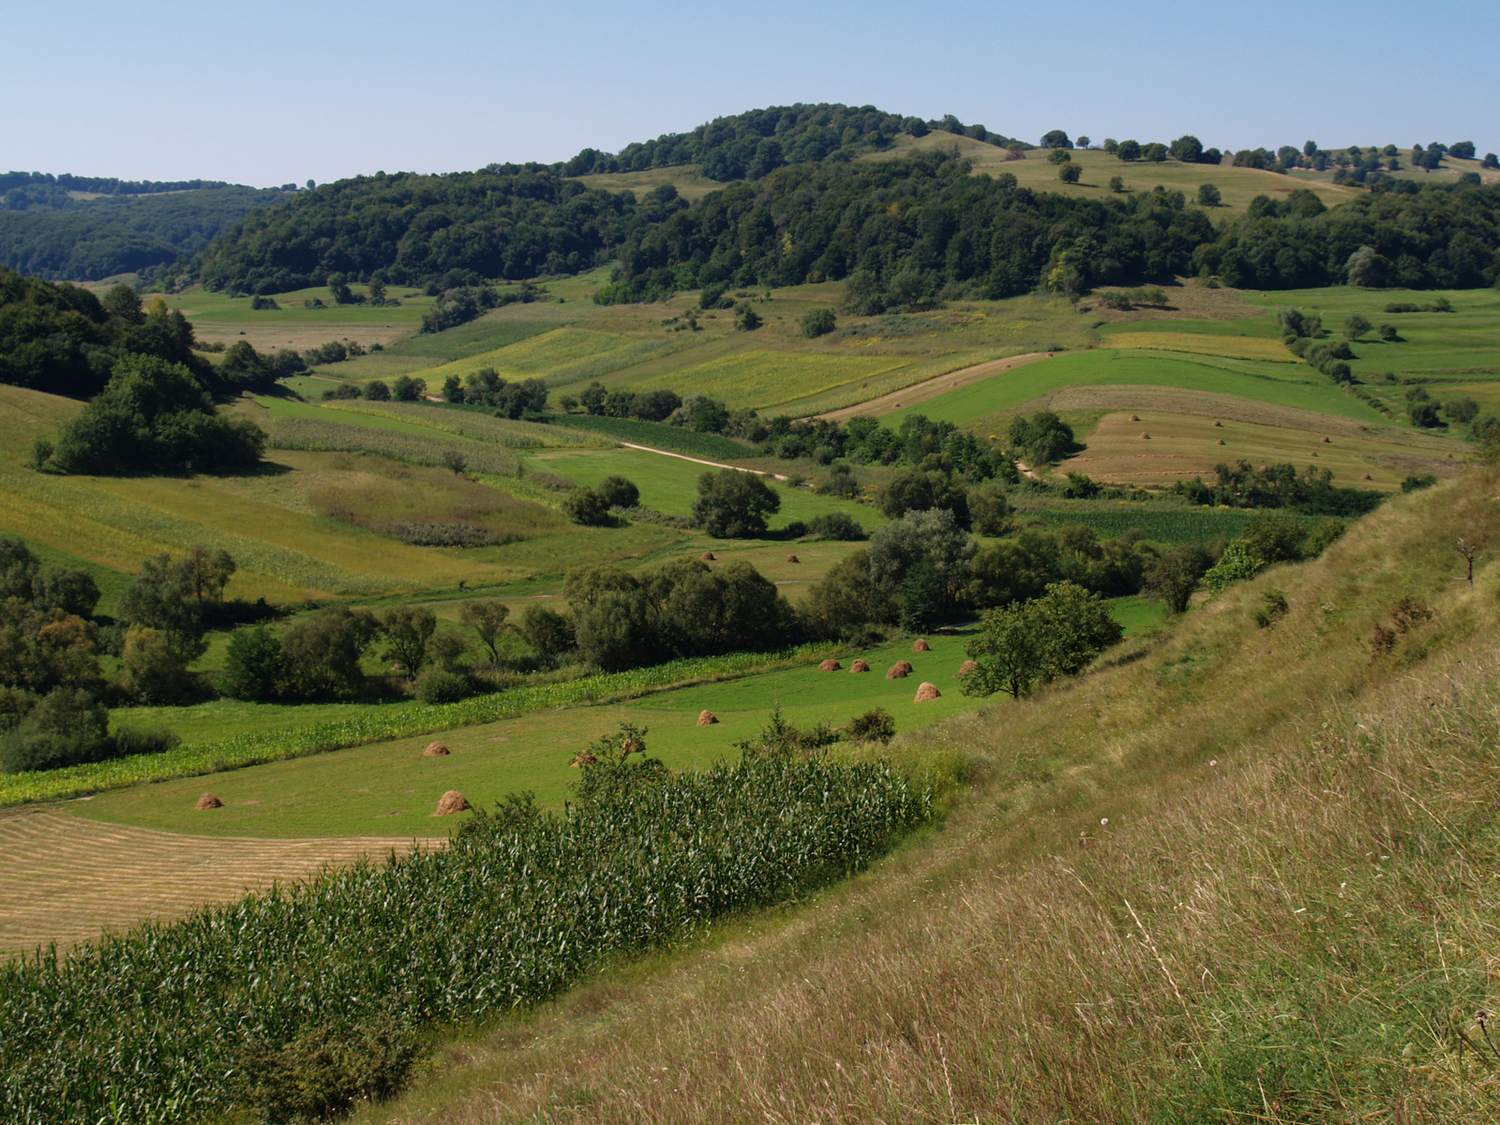 A structurally rich agricultural landscape (Romania) can promote biodiversity.